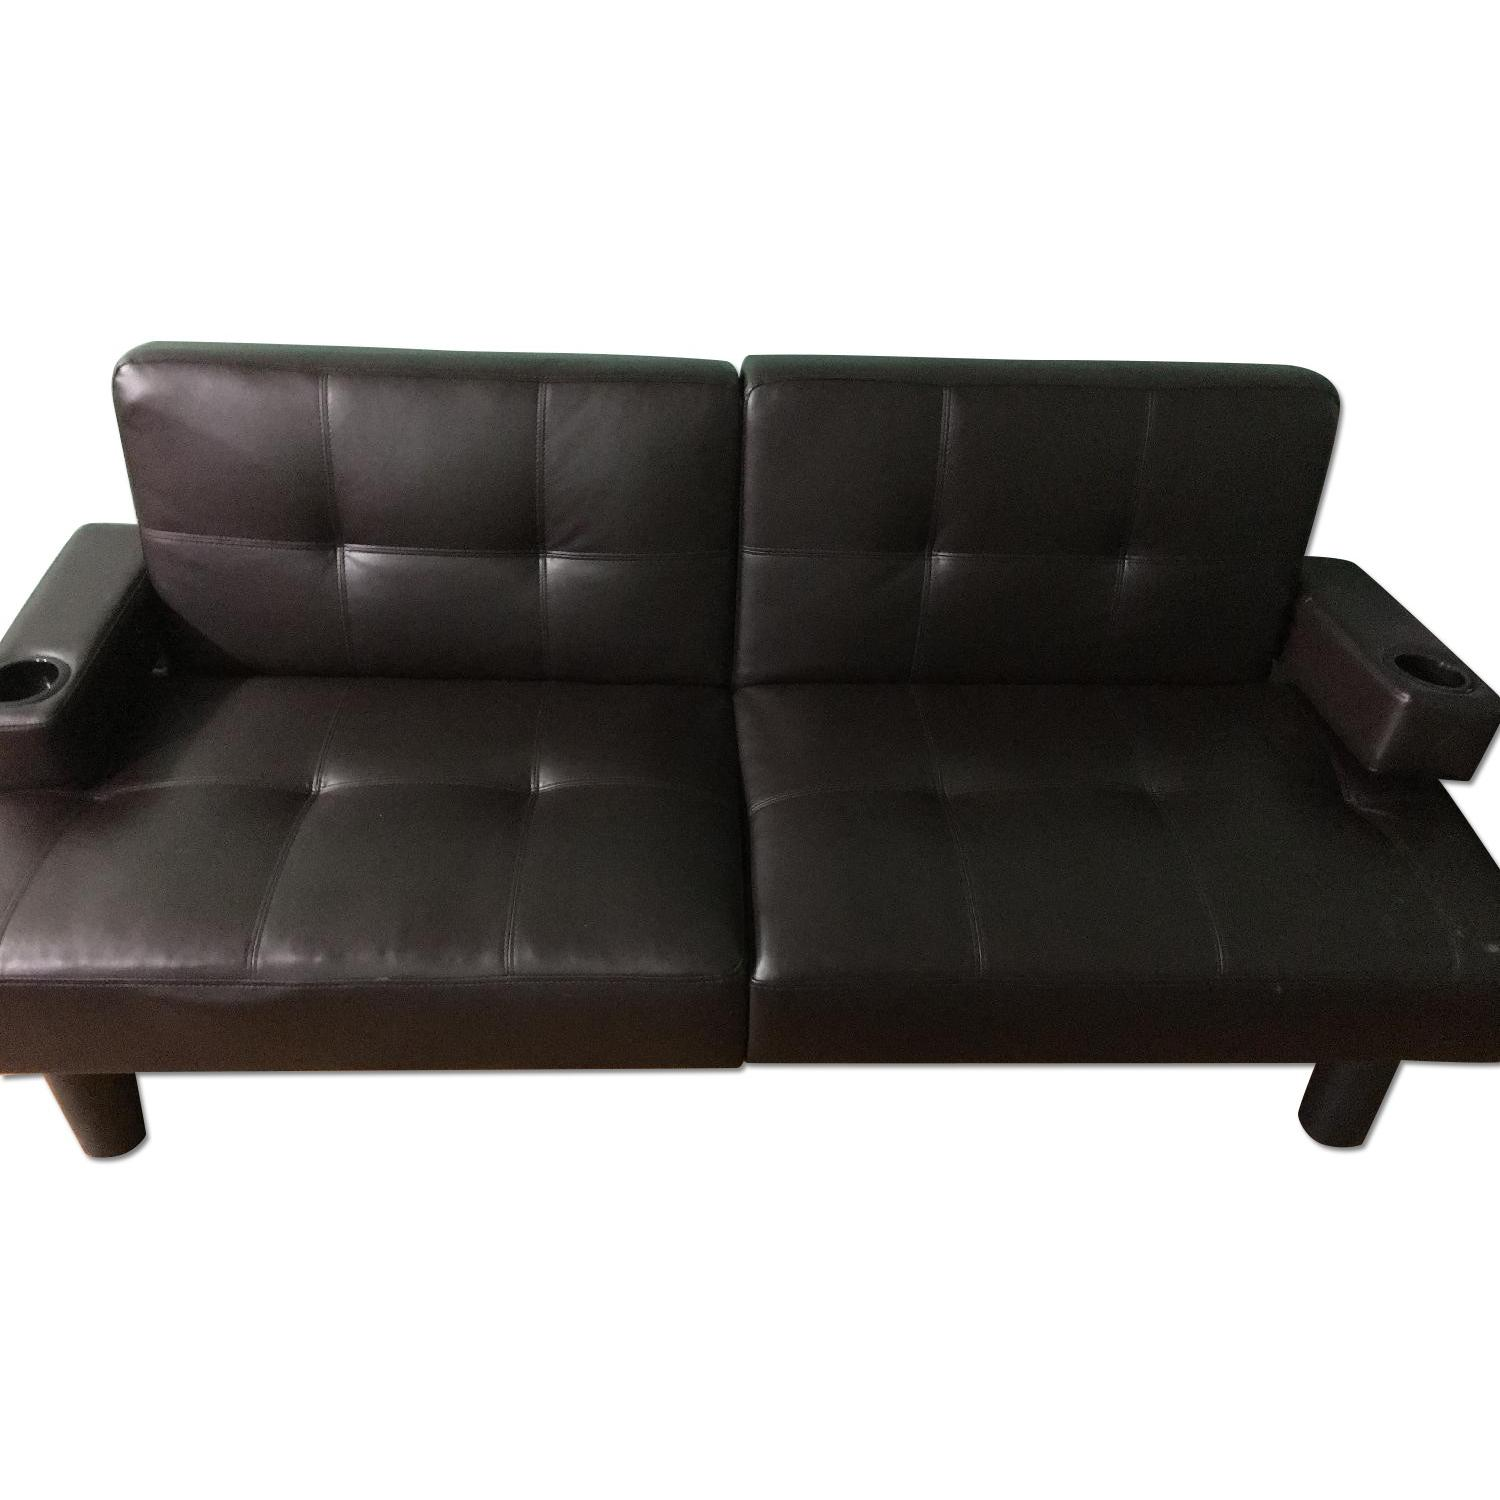 Corner Furniture Leather Sleeper Sofa - image-0